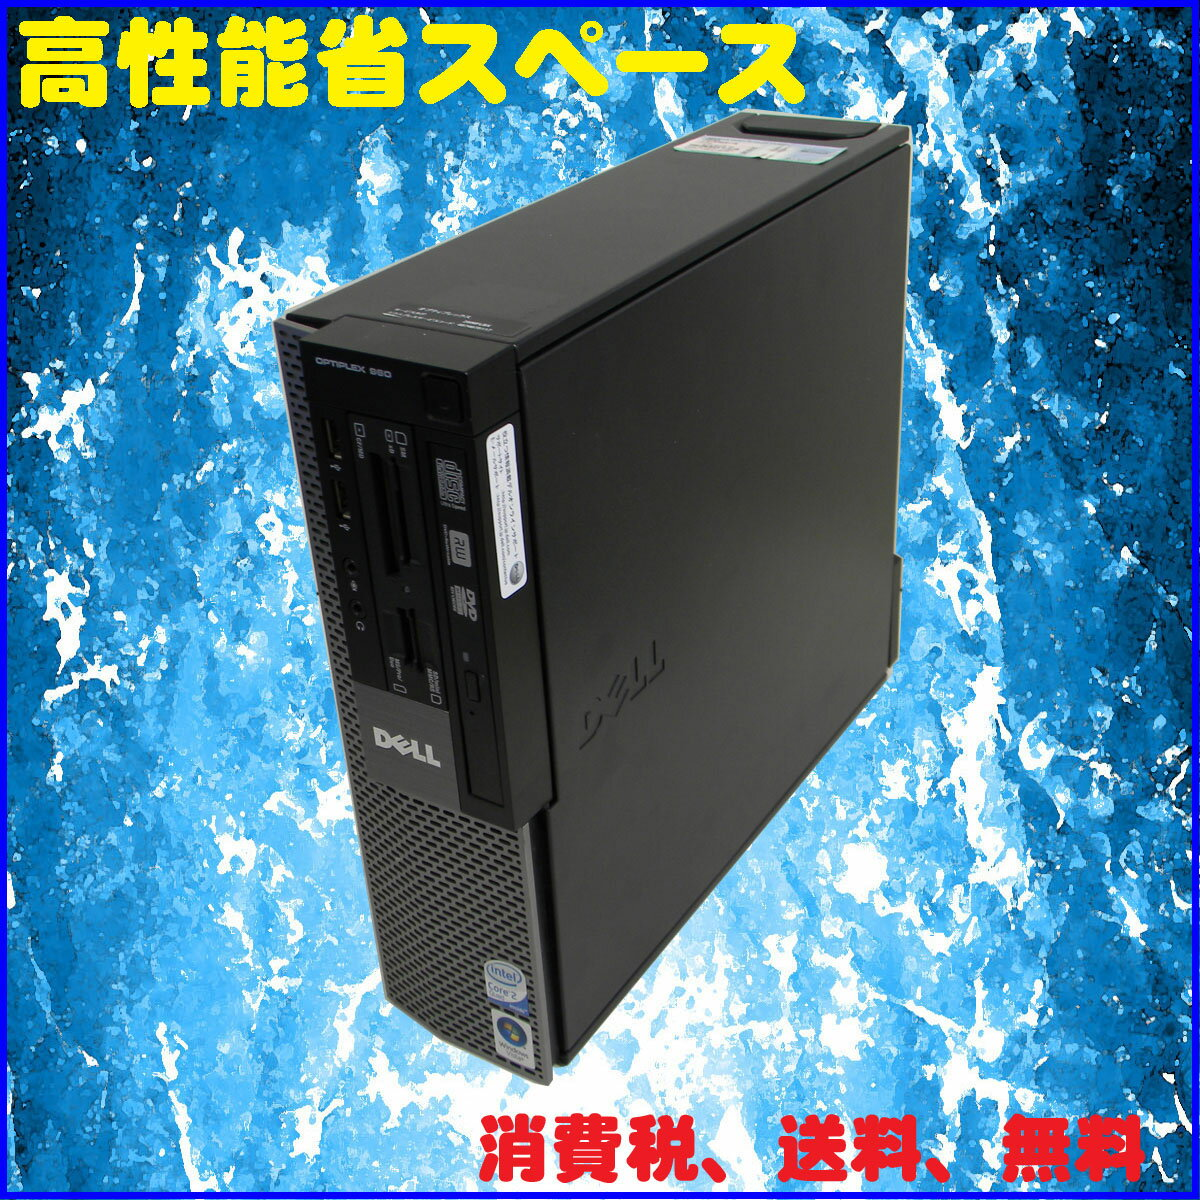 DELL Optiplex 960【中古】 DVDスーパーマルチ Core2Duo 3.33GHz MEM:4GB&HDD320GB搭載 WPS Officeインストール済み 中古パソコン Windows7